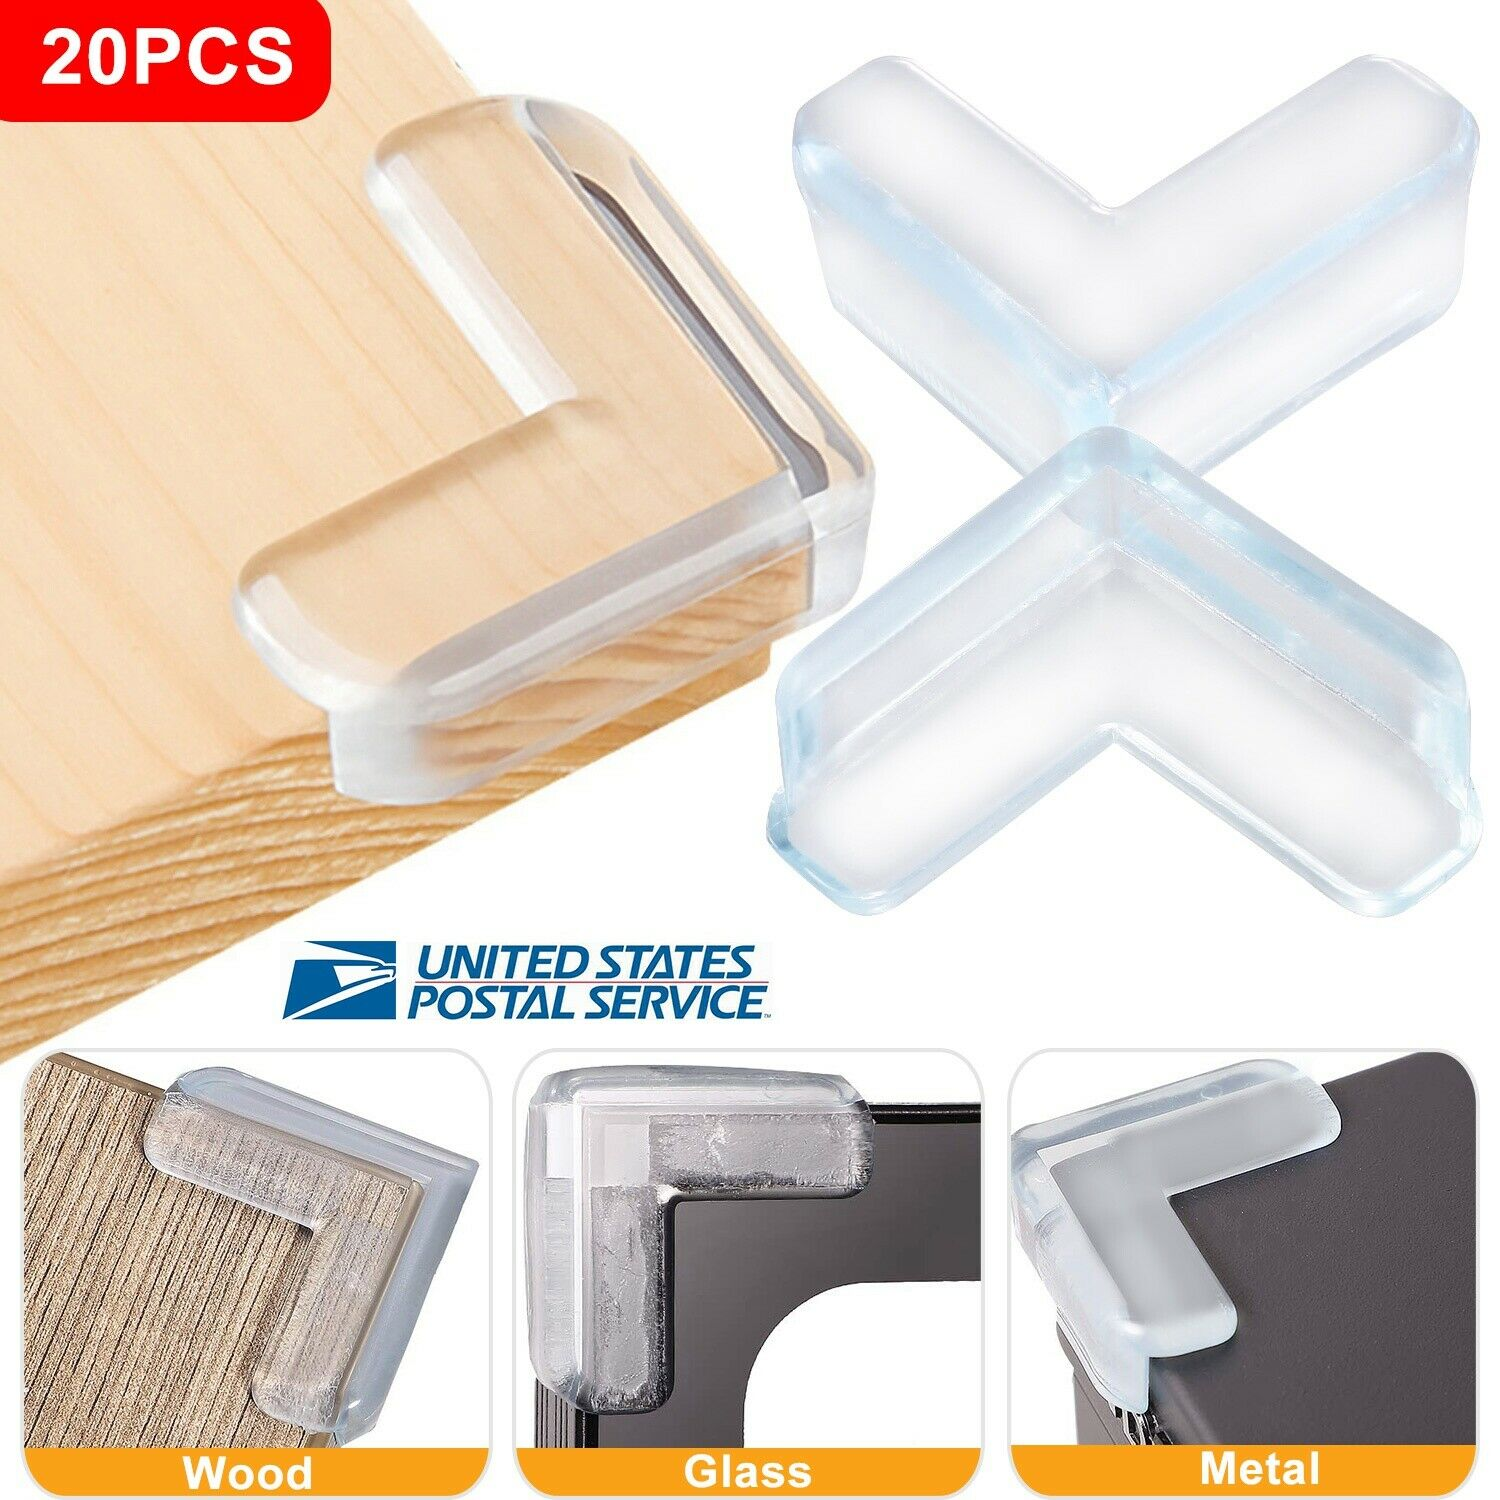 20pcs Soft Clear Table Desk Edge Corner Baby Safety Protector Guard Cover Bumper